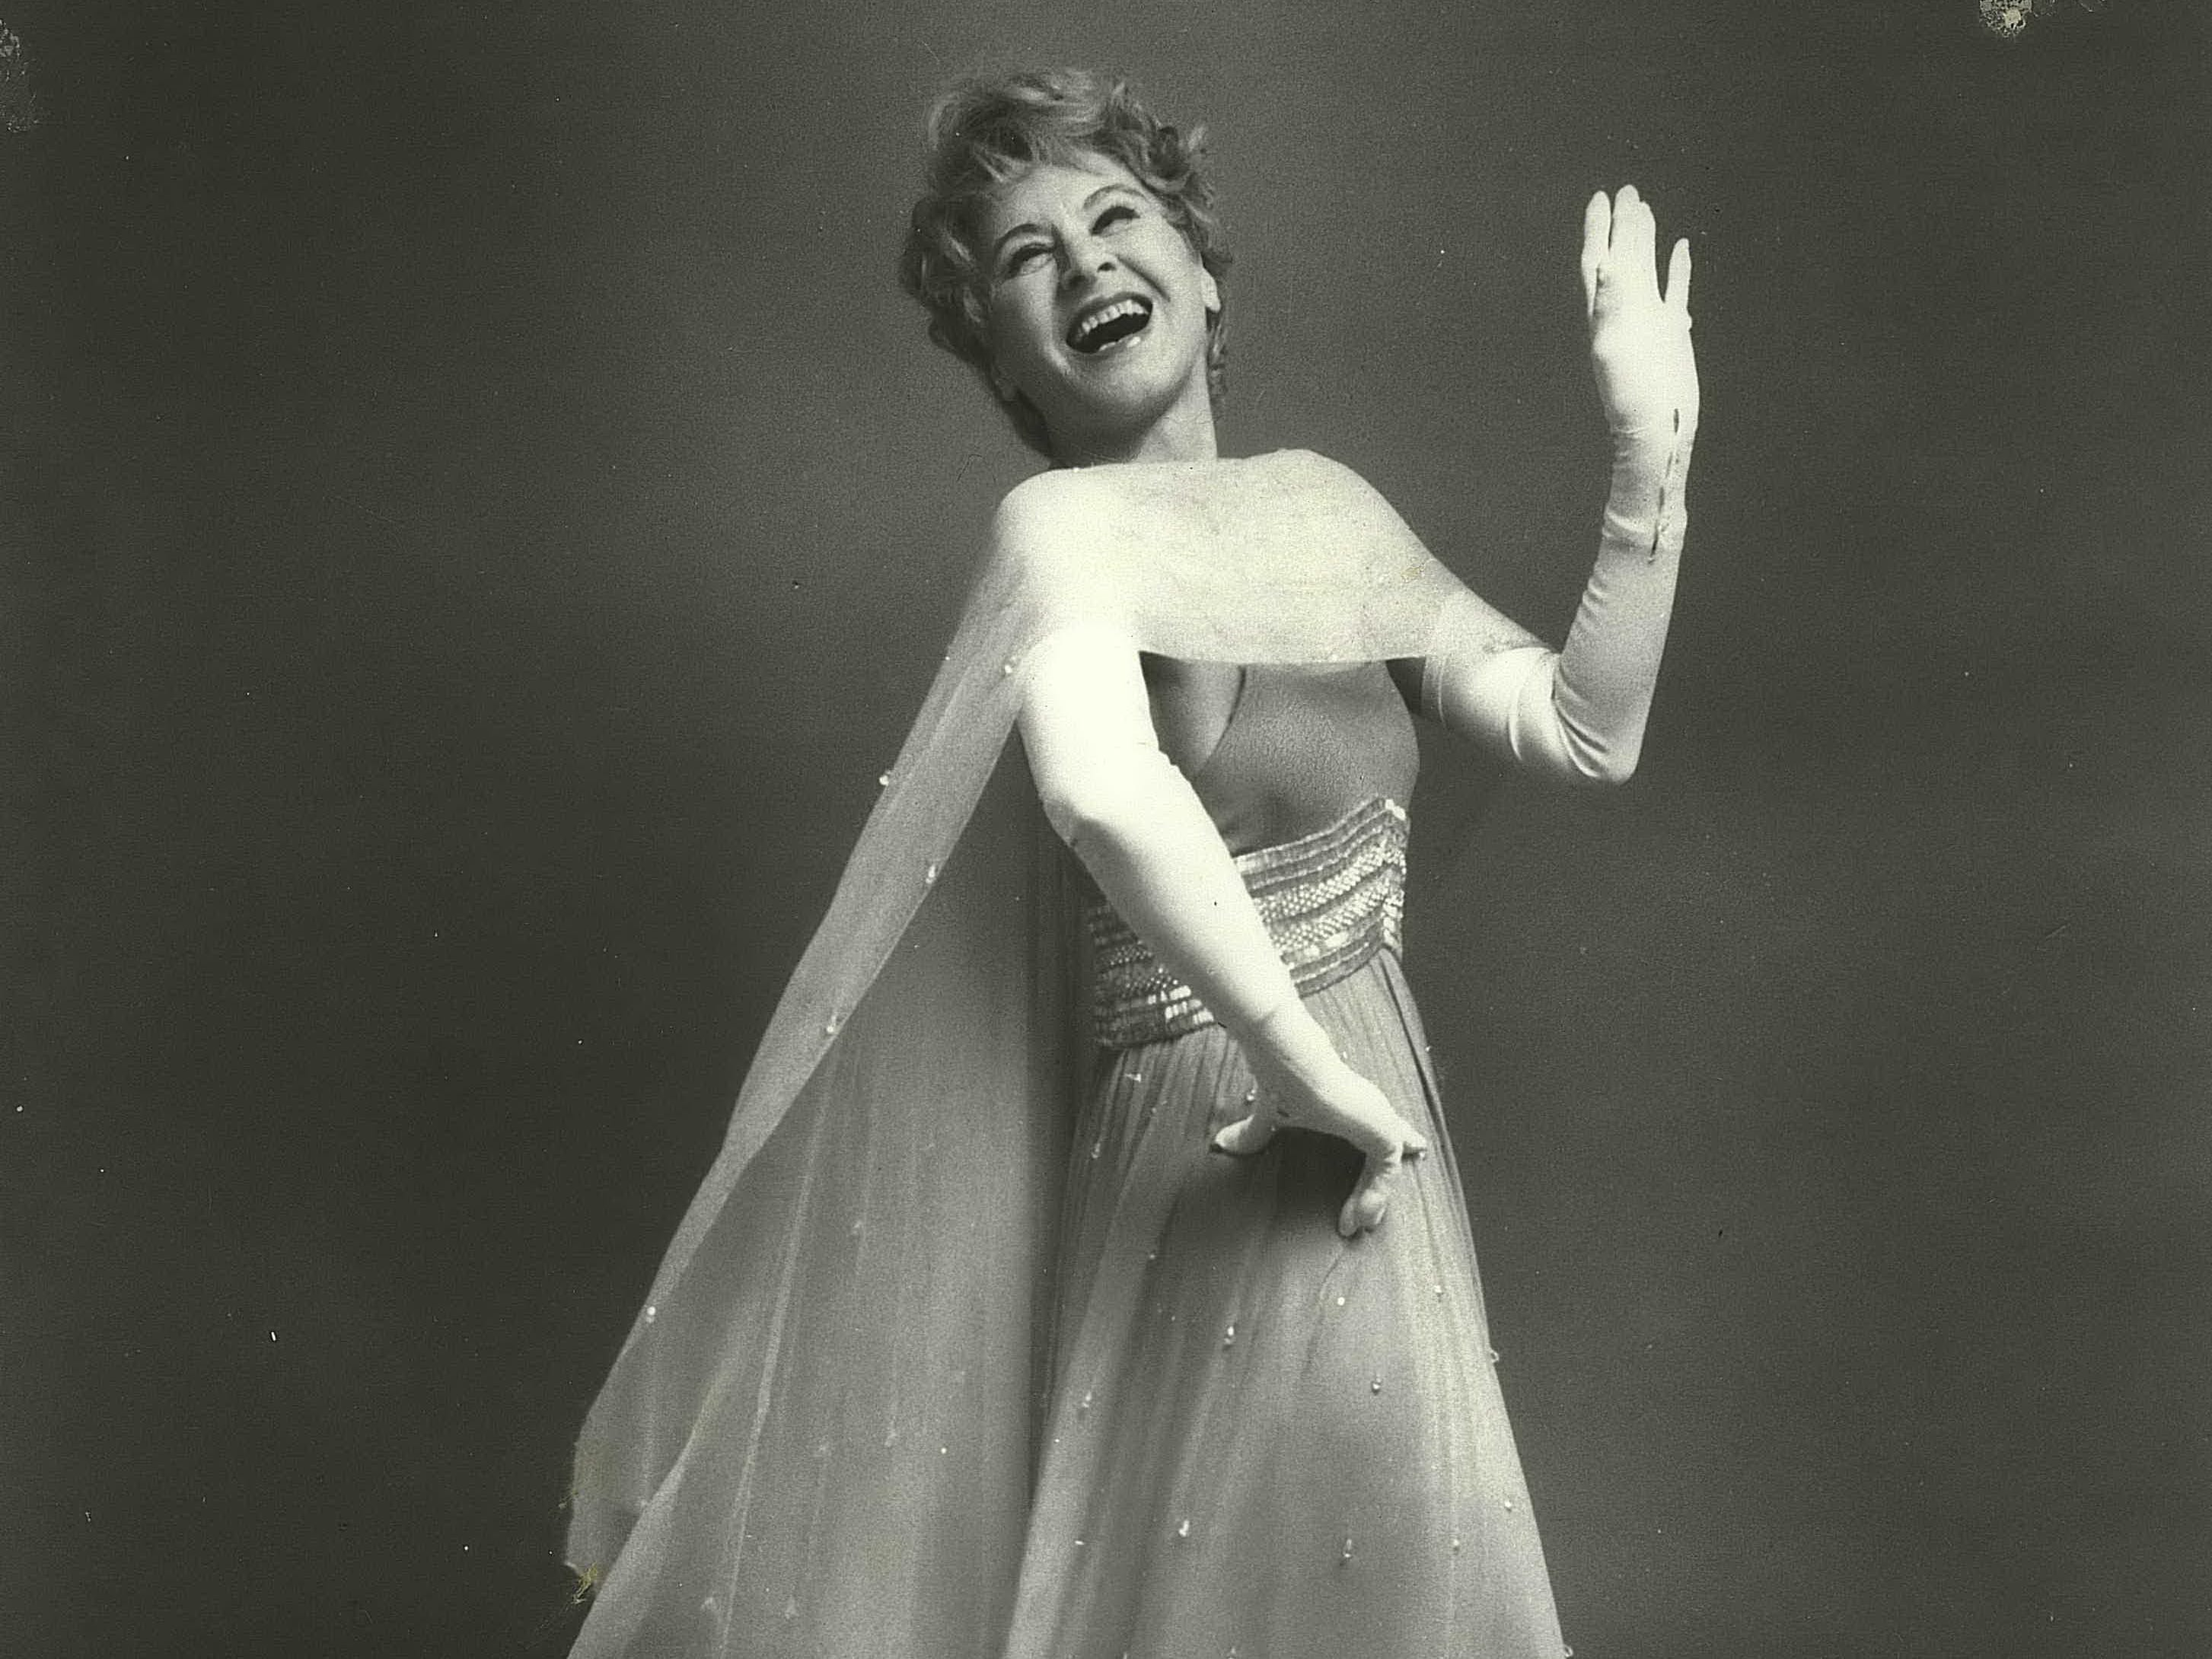 Singer Hildegarde in formal gown (United States Singers)